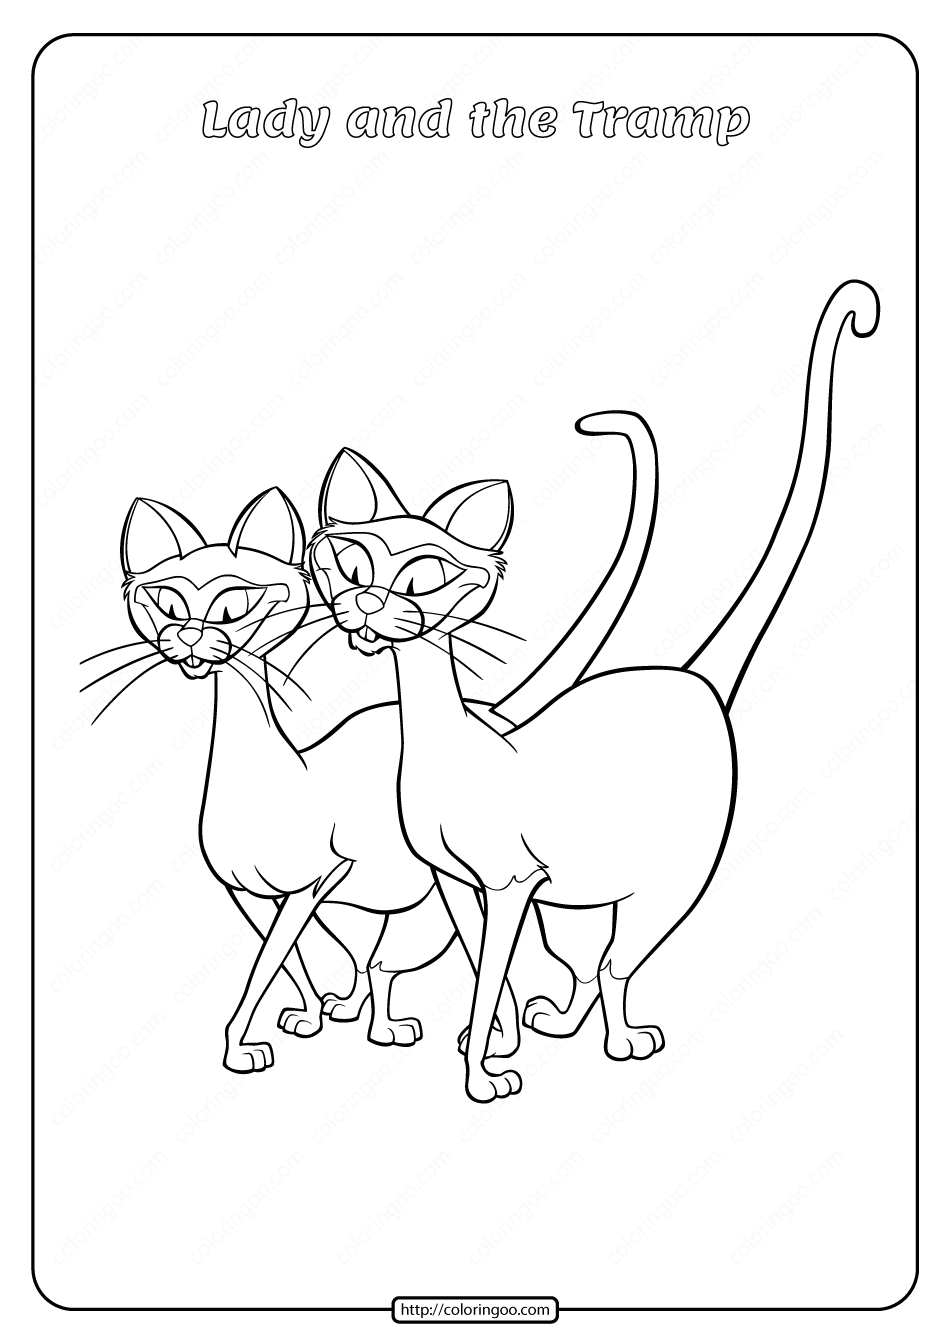 Printable Lady and the Tramp Coloring Pages 04